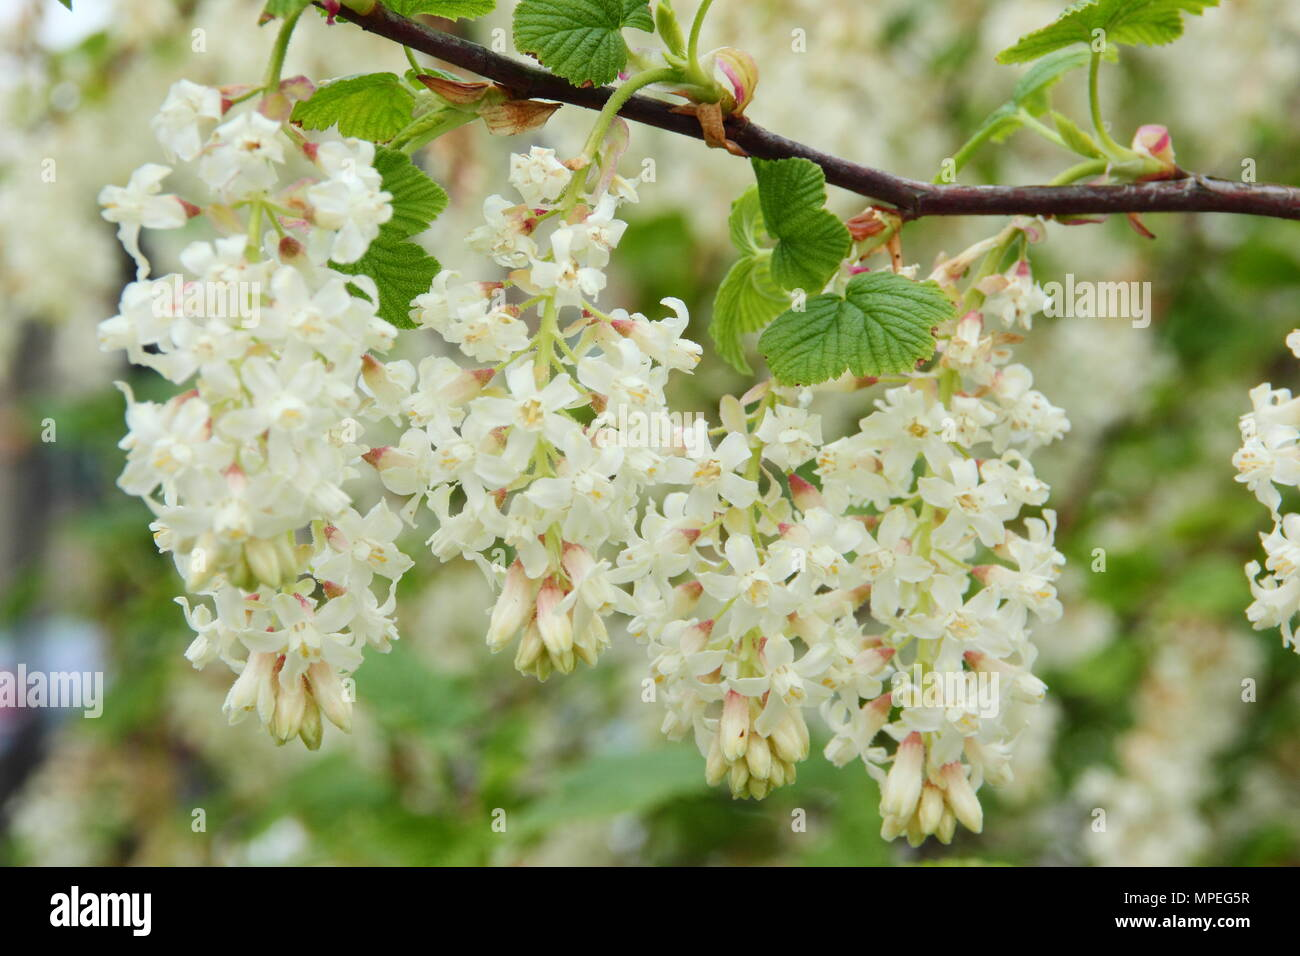 Blossoms of flowering currant ribes sanguineum white icicle in a blossoms of flowering currant ribes sanguineum white icicle in a spring garden uk mightylinksfo